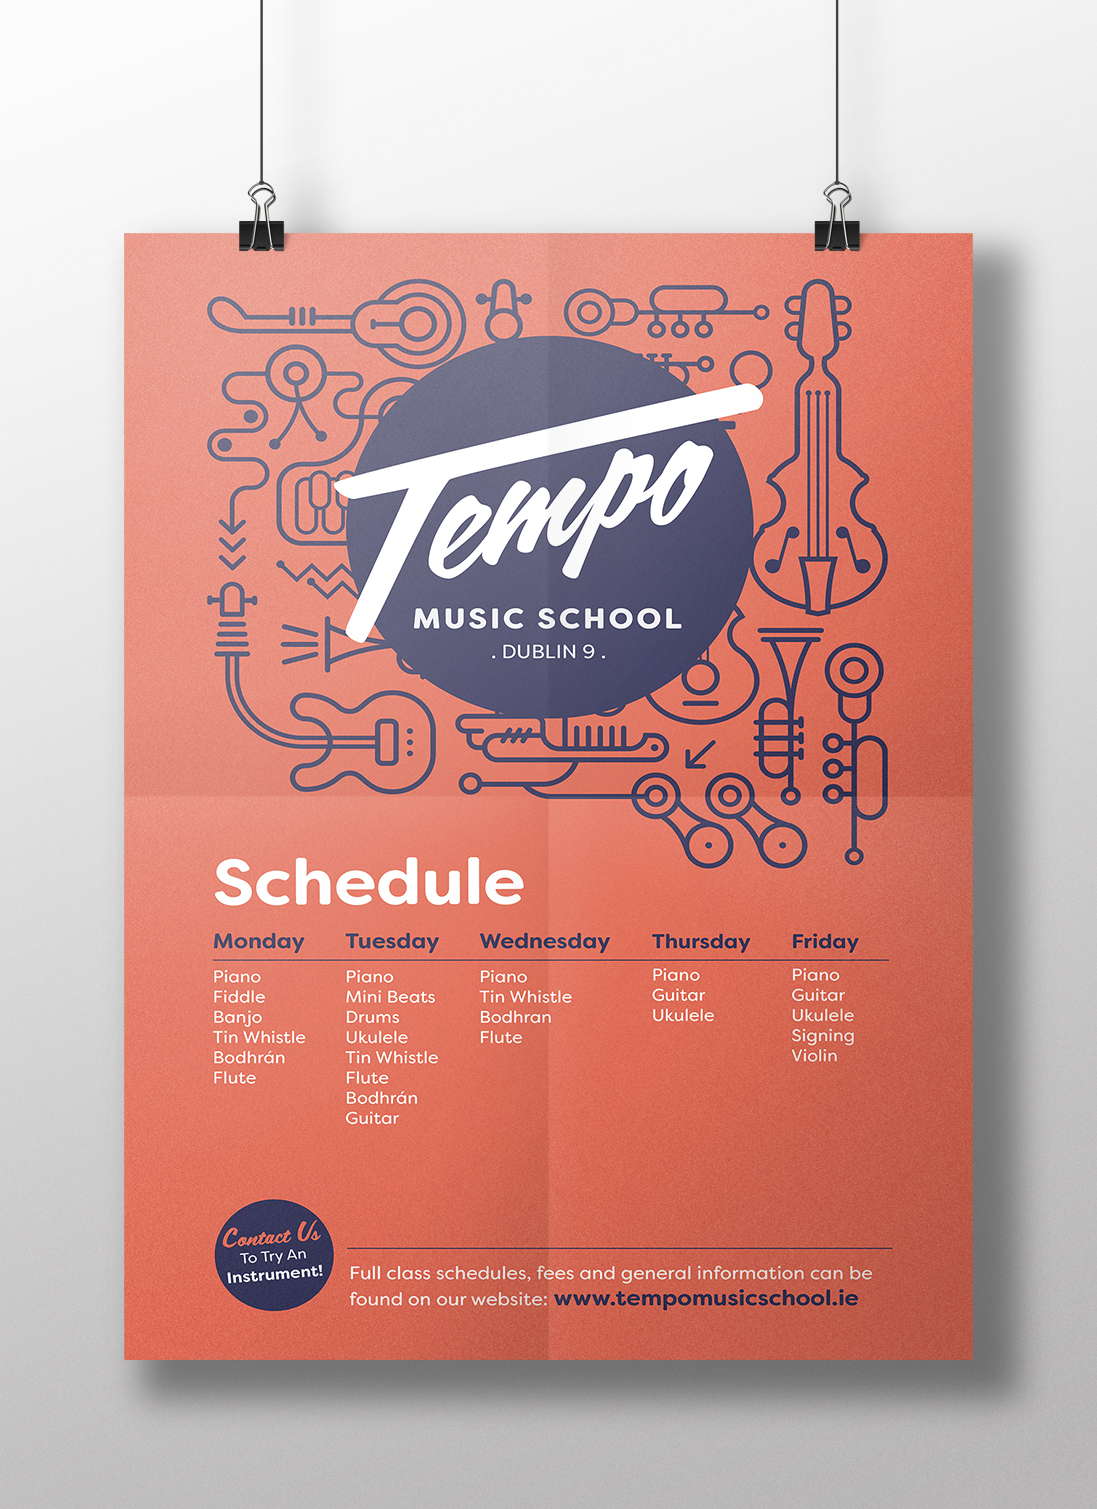 Tempo schedule poster_mockup_MD.jpg